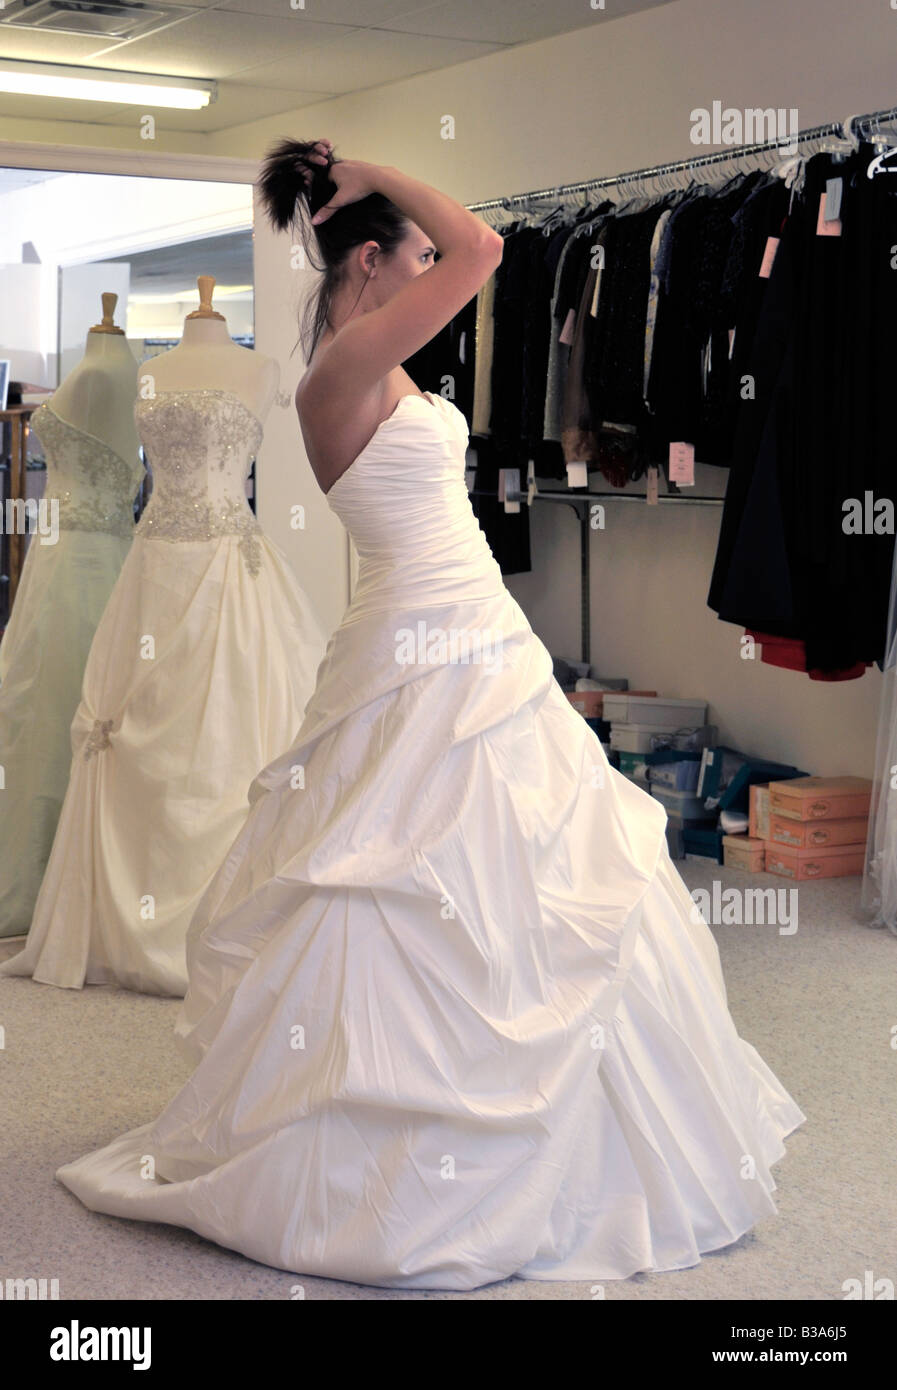 A 21 year old bride has a fitting of her bridal gown. She gathers up her hair to see how it looks. - Stock Image